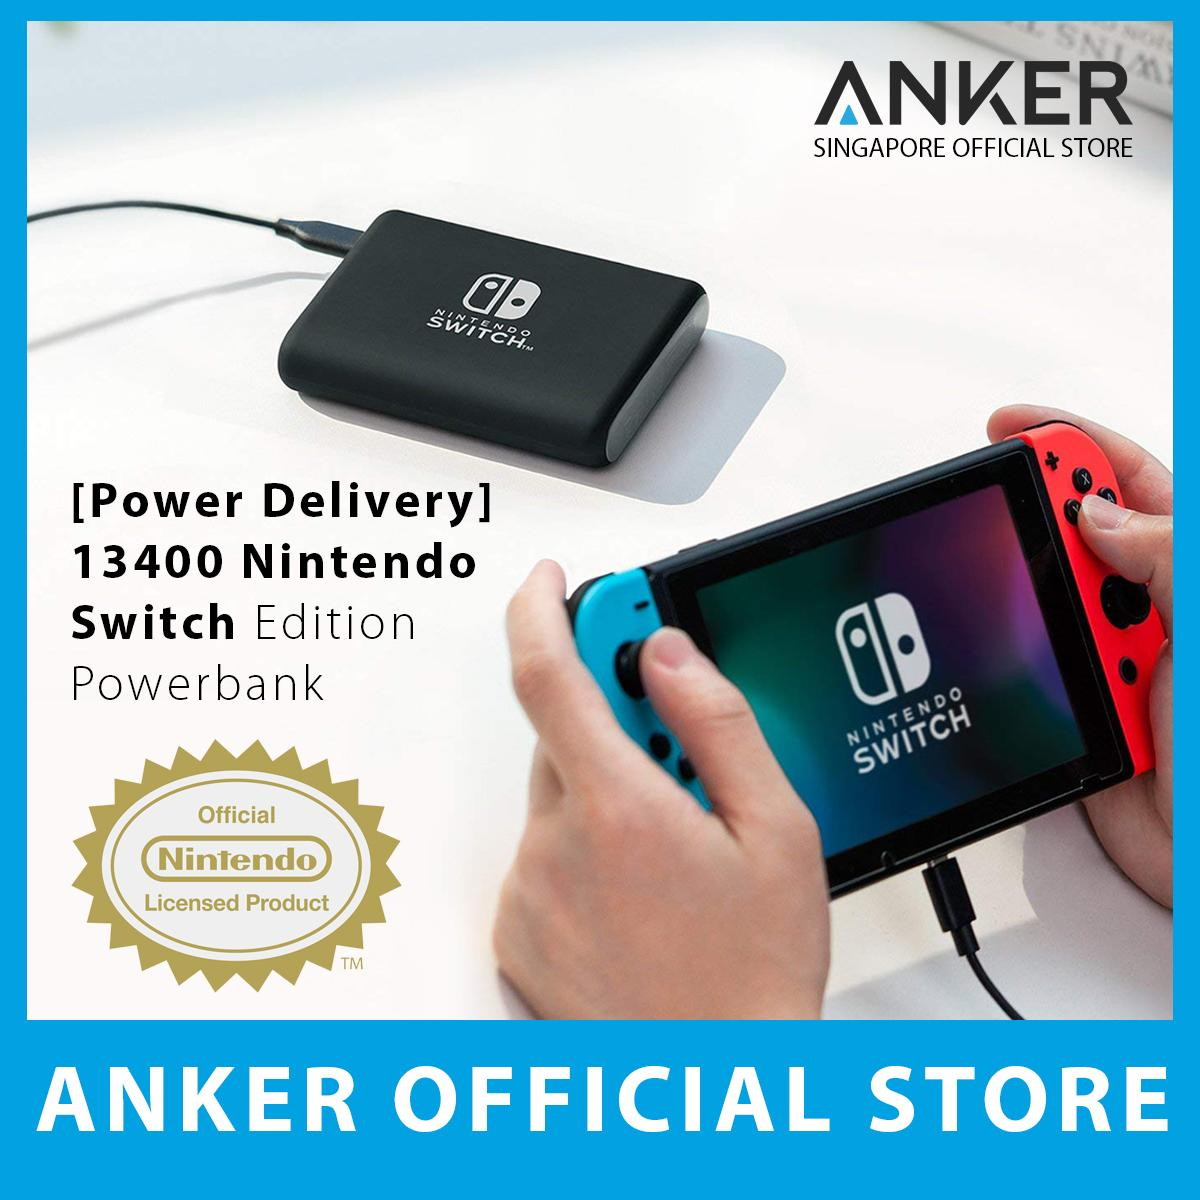 [Power Delivery] Anker PowerCore 13400 Nintendo Switch Edition Powerbank